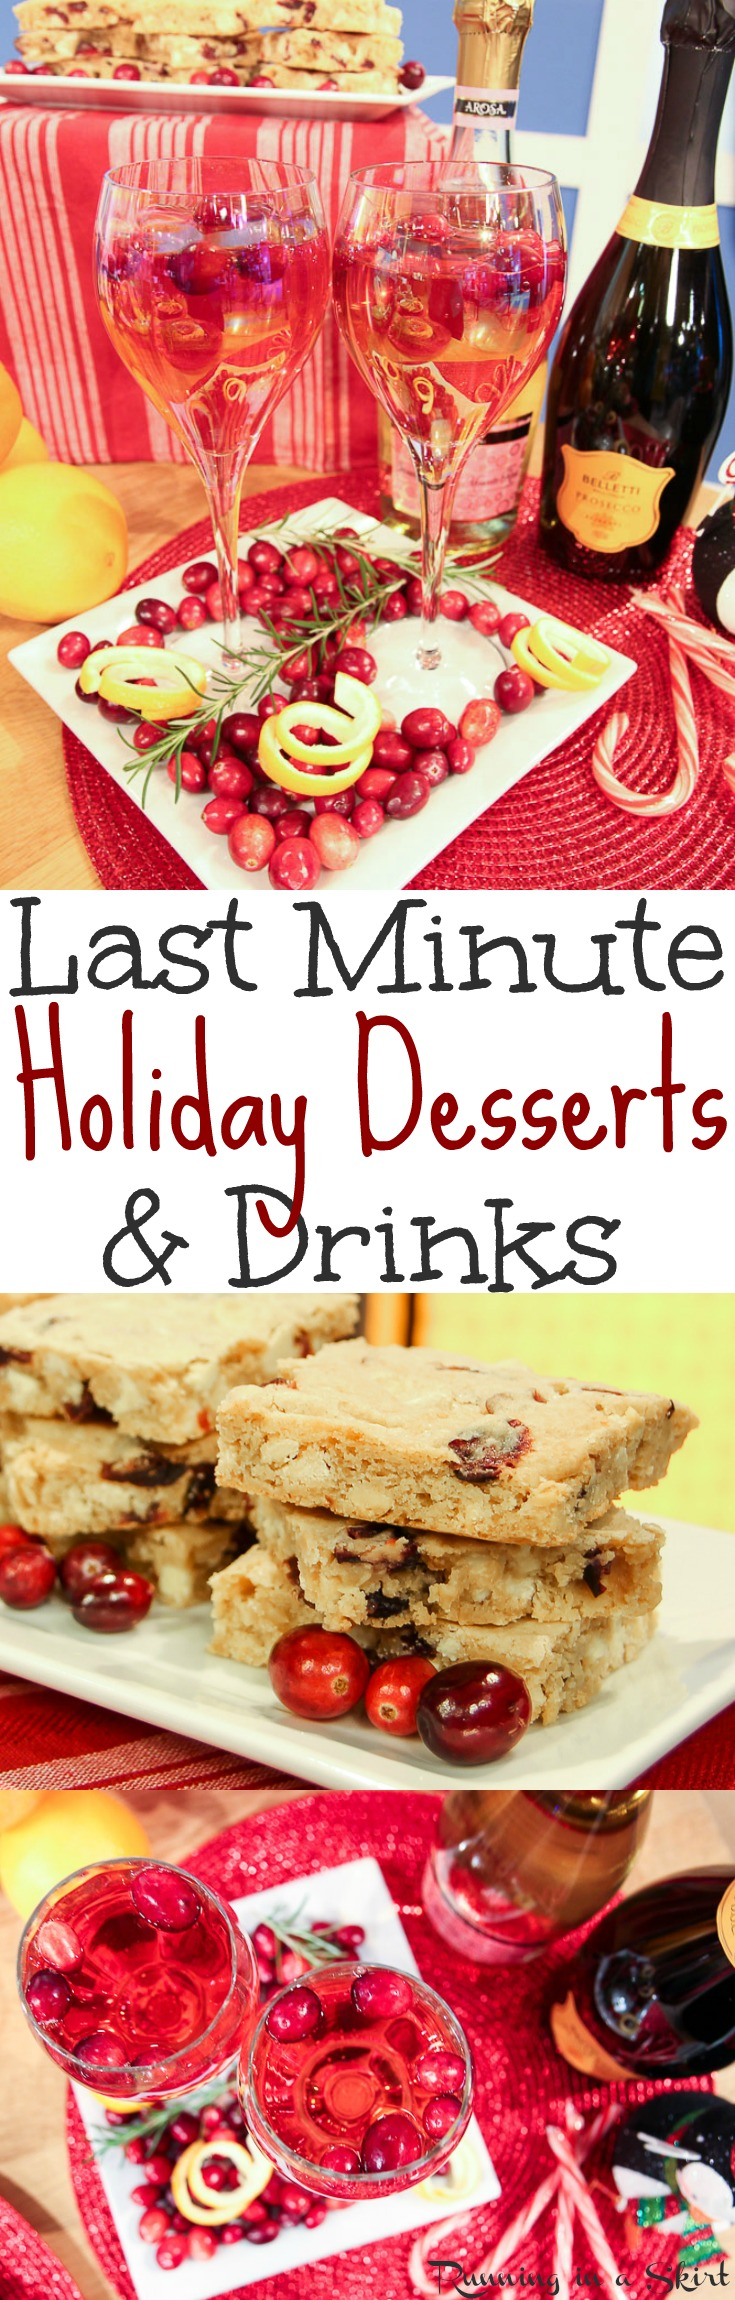 Last Minute Christmas Desserts & Drinks recipes for the holidays.  Budget friendly, fast, simple and easy ideas from ALDI.  These holiday desserts are great for a party or for a crowd.  Includes an easy recipe for White Chocolate Cranberry Blondies and the perfect holiday drink for adults. / Running in a Skirt #ALDIlove @aldiusa via @juliewunder